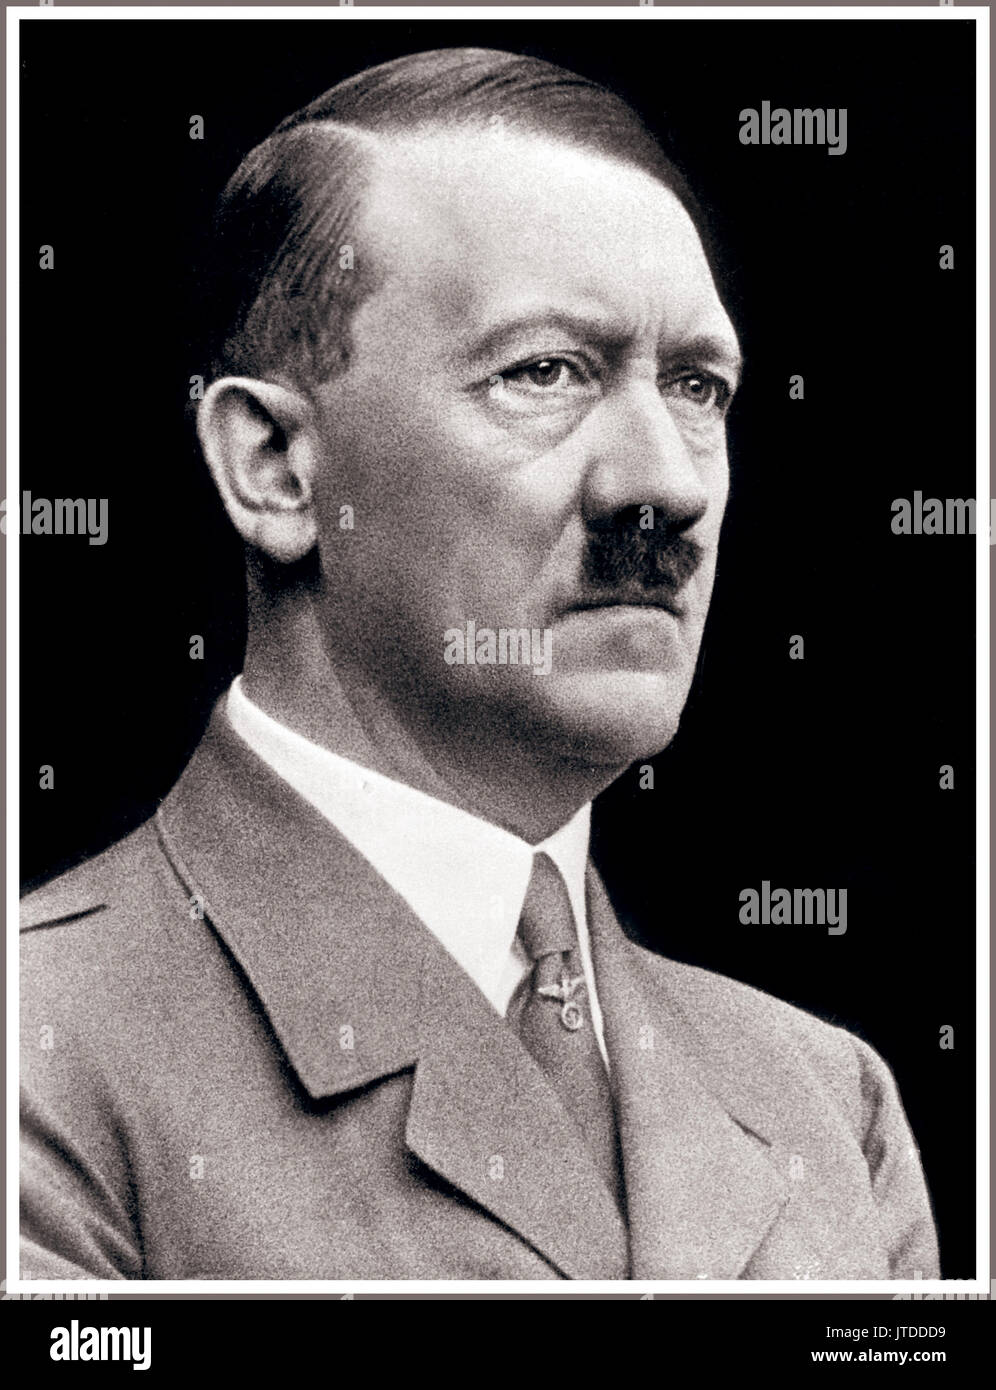 a scan of the history of adolf hitler Adolf hitler dead in berlin daily  we know from history that he apparently committed suicide in his command bunker below the streets  couldn't scan it,.